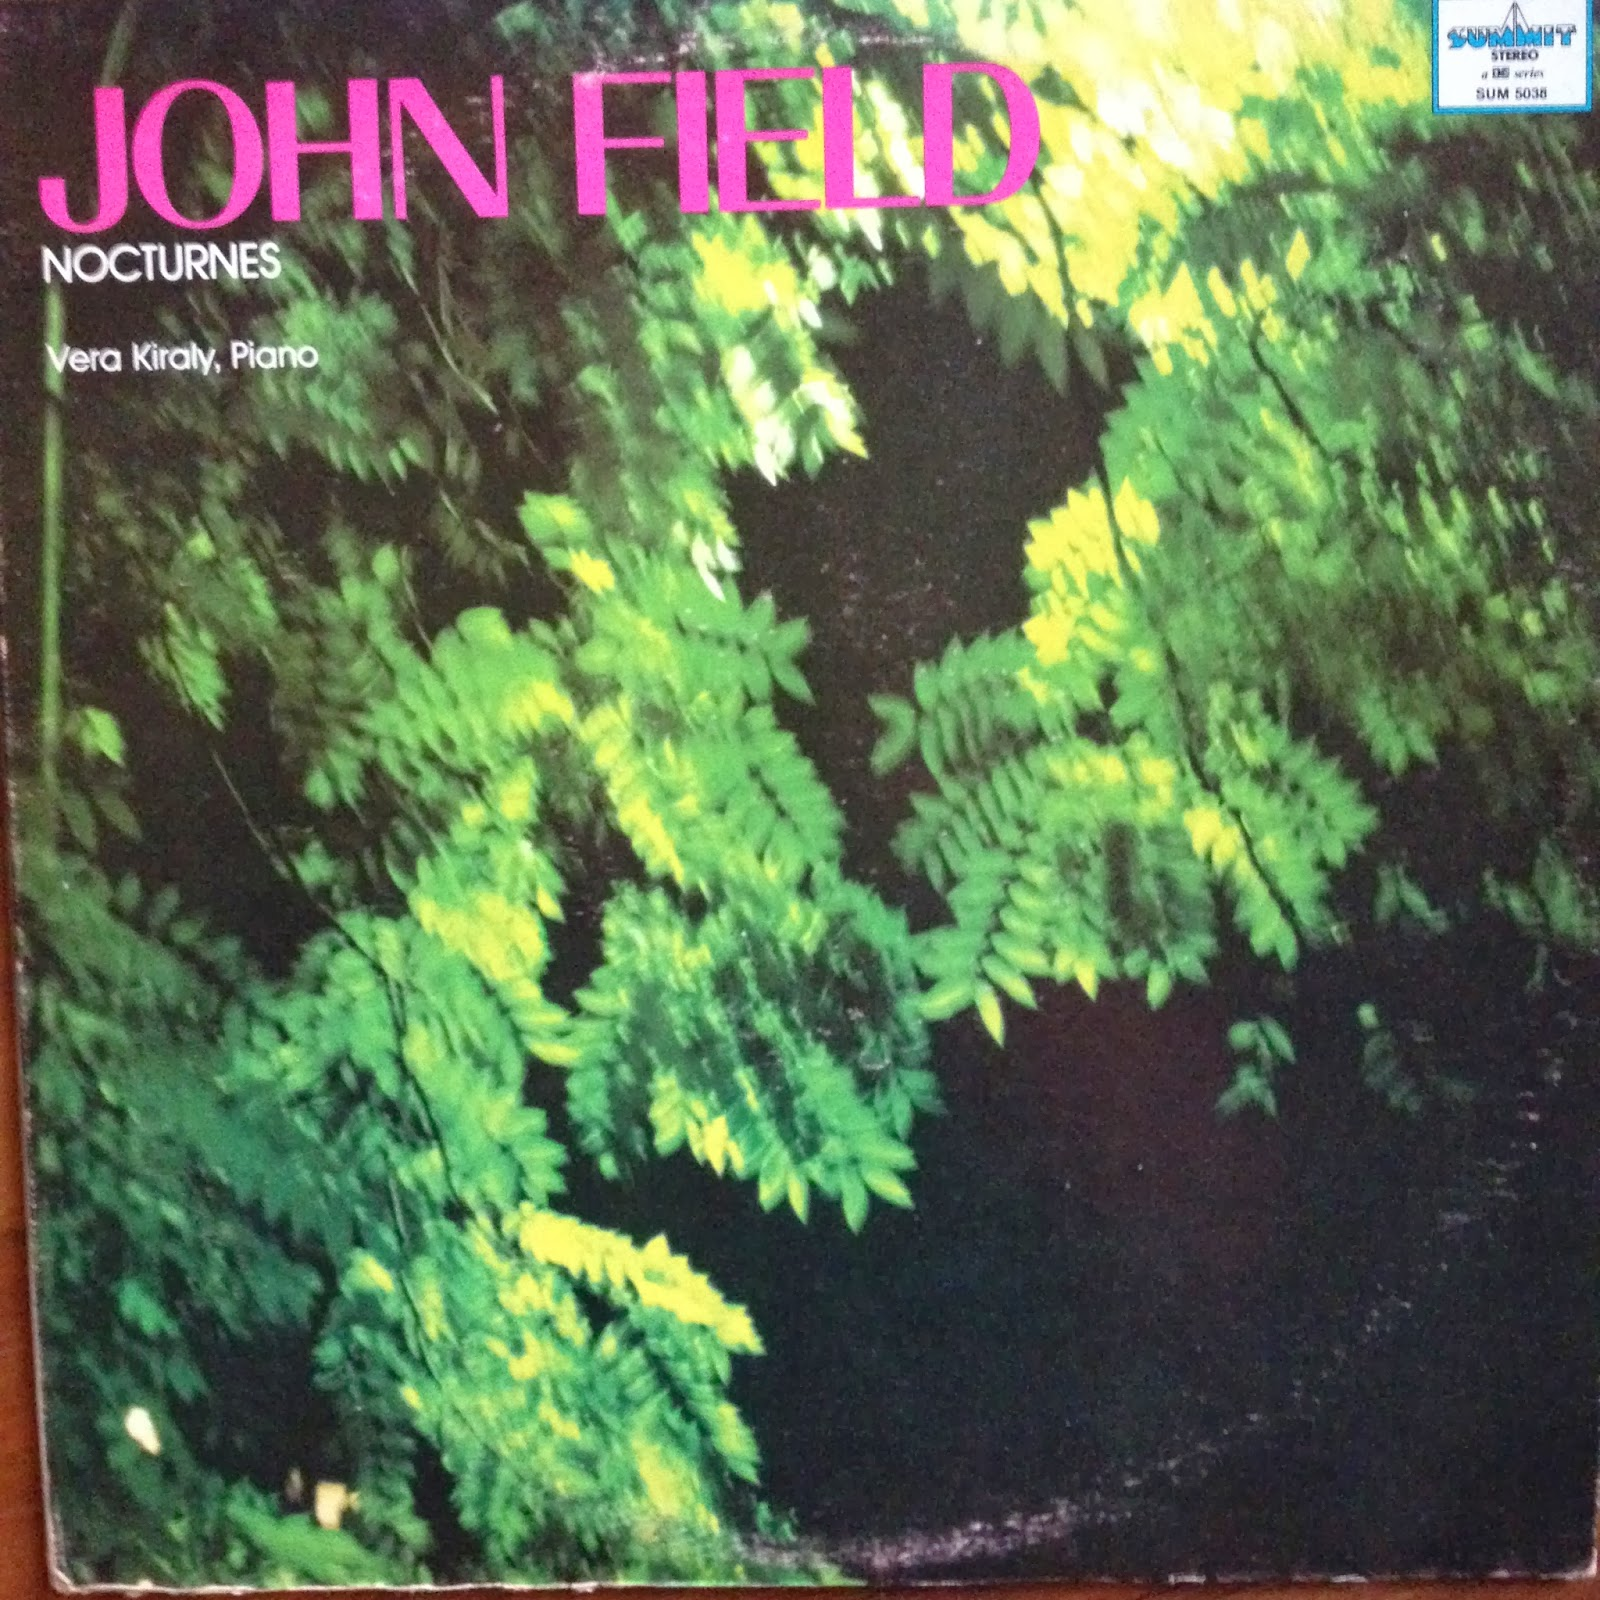 LP cover of John Field Nocturnes